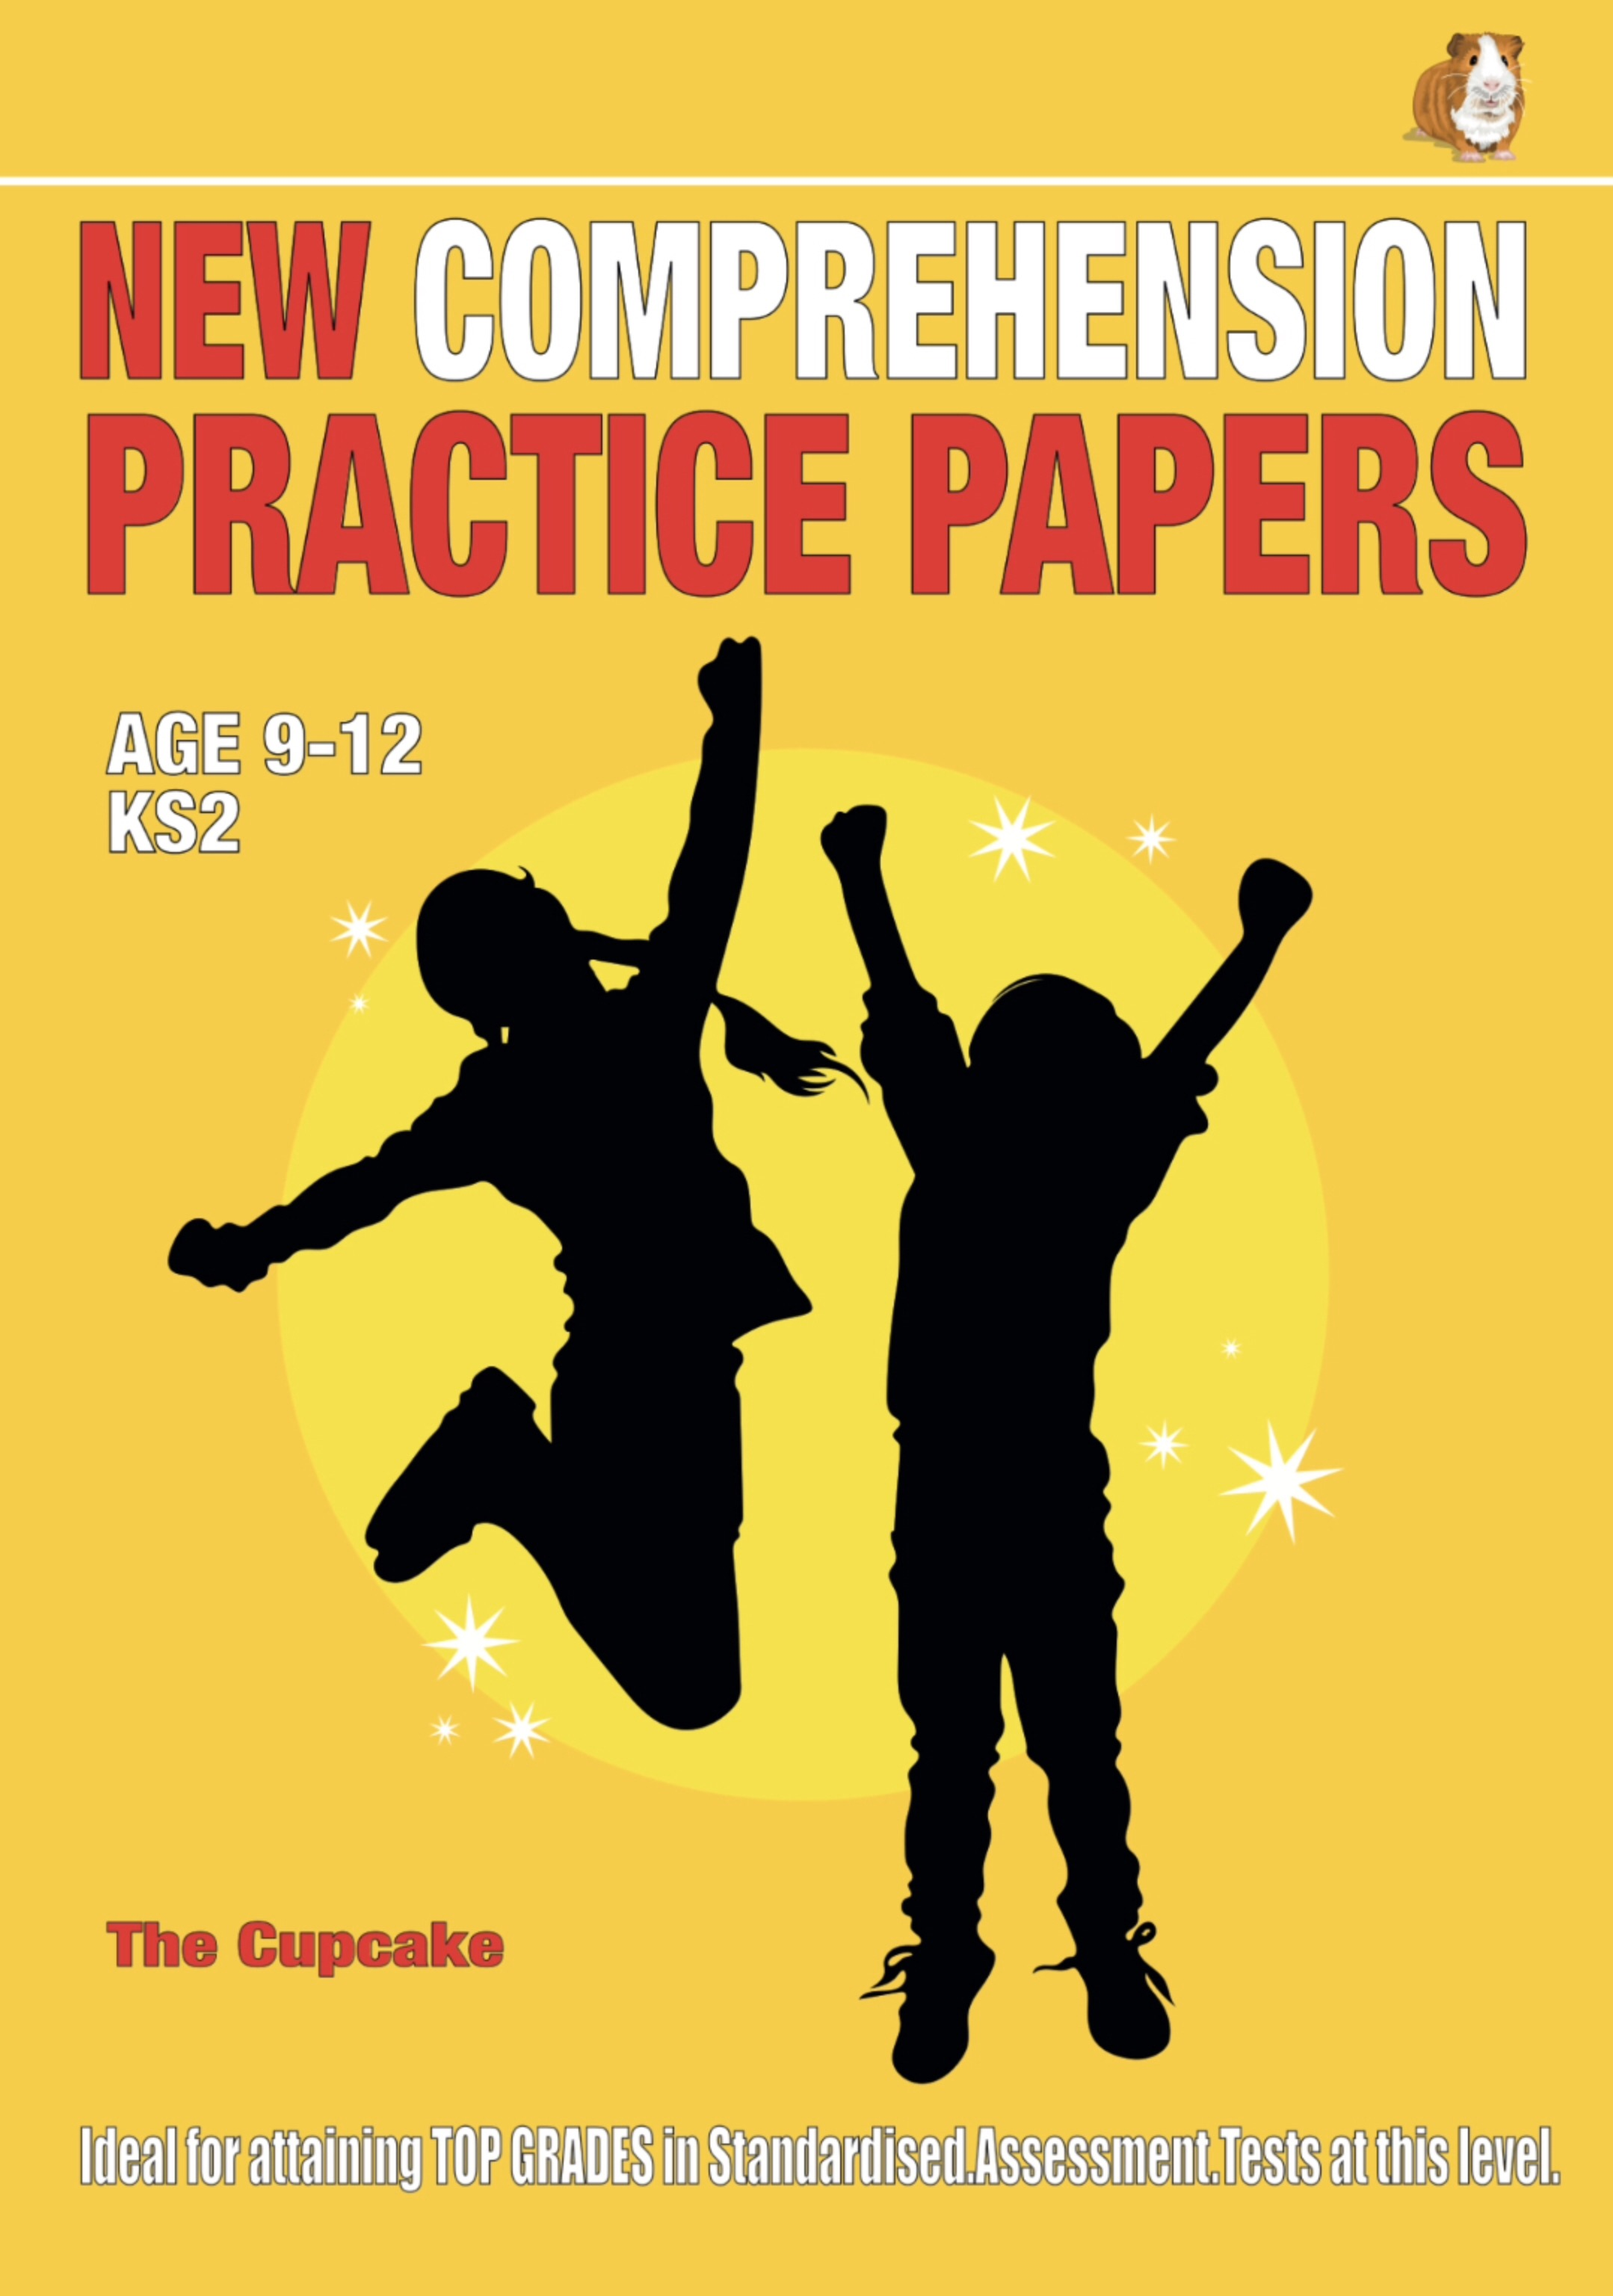 SATS Comprehension Practice Papers: The Cup Cake (Print Edition)